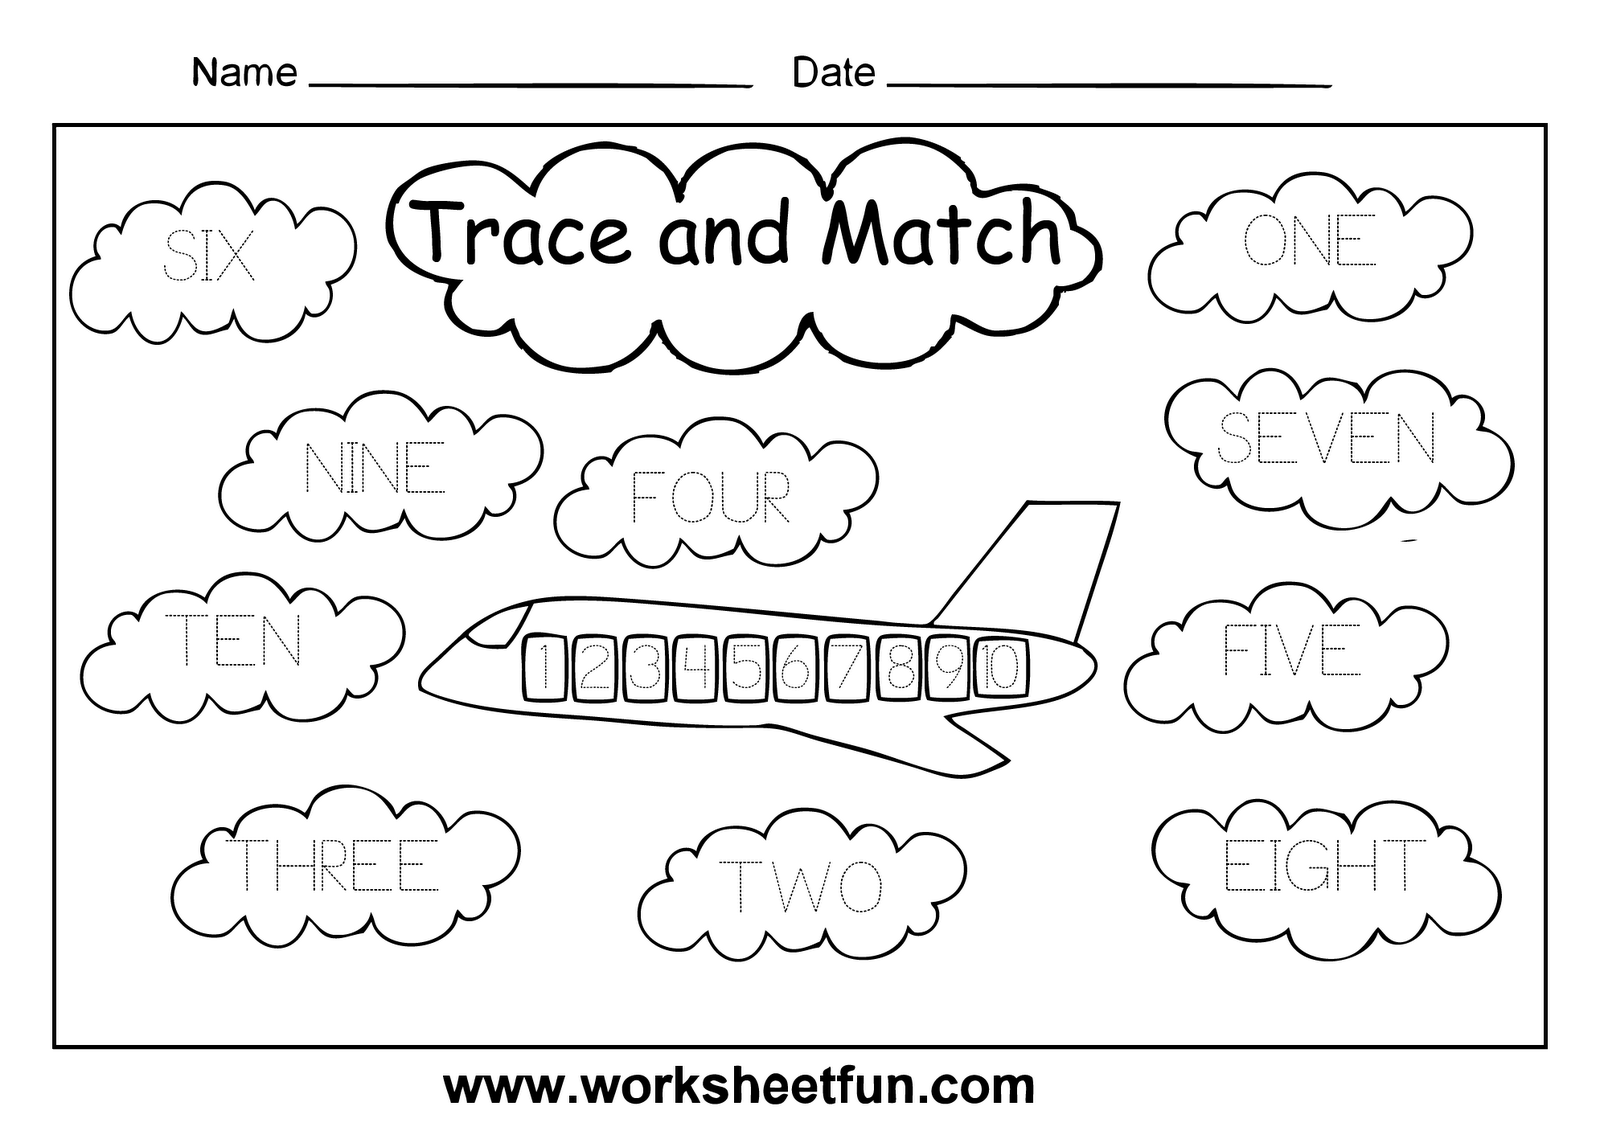 Weirdmailus  Sweet Worksheet Numbers    Reocurent With Licious Africa Geography Worksheets Besides Direct And Inverse Variation Word Problems Worksheet Furthermore Maryland Child Support Guidelines Worksheet With Adorable Building Sentences Worksheet Also Th Grade Science Worksheets Printable In Addition Engineering Worksheets And Plurals And Possessives Worksheet As Well As Writing Kindergarten Worksheets Additionally Insert Excel Worksheet Into Word From Reocurentcom With Weirdmailus  Licious Worksheet Numbers    Reocurent With Adorable Africa Geography Worksheets Besides Direct And Inverse Variation Word Problems Worksheet Furthermore Maryland Child Support Guidelines Worksheet And Sweet Building Sentences Worksheet Also Th Grade Science Worksheets Printable In Addition Engineering Worksheets From Reocurentcom